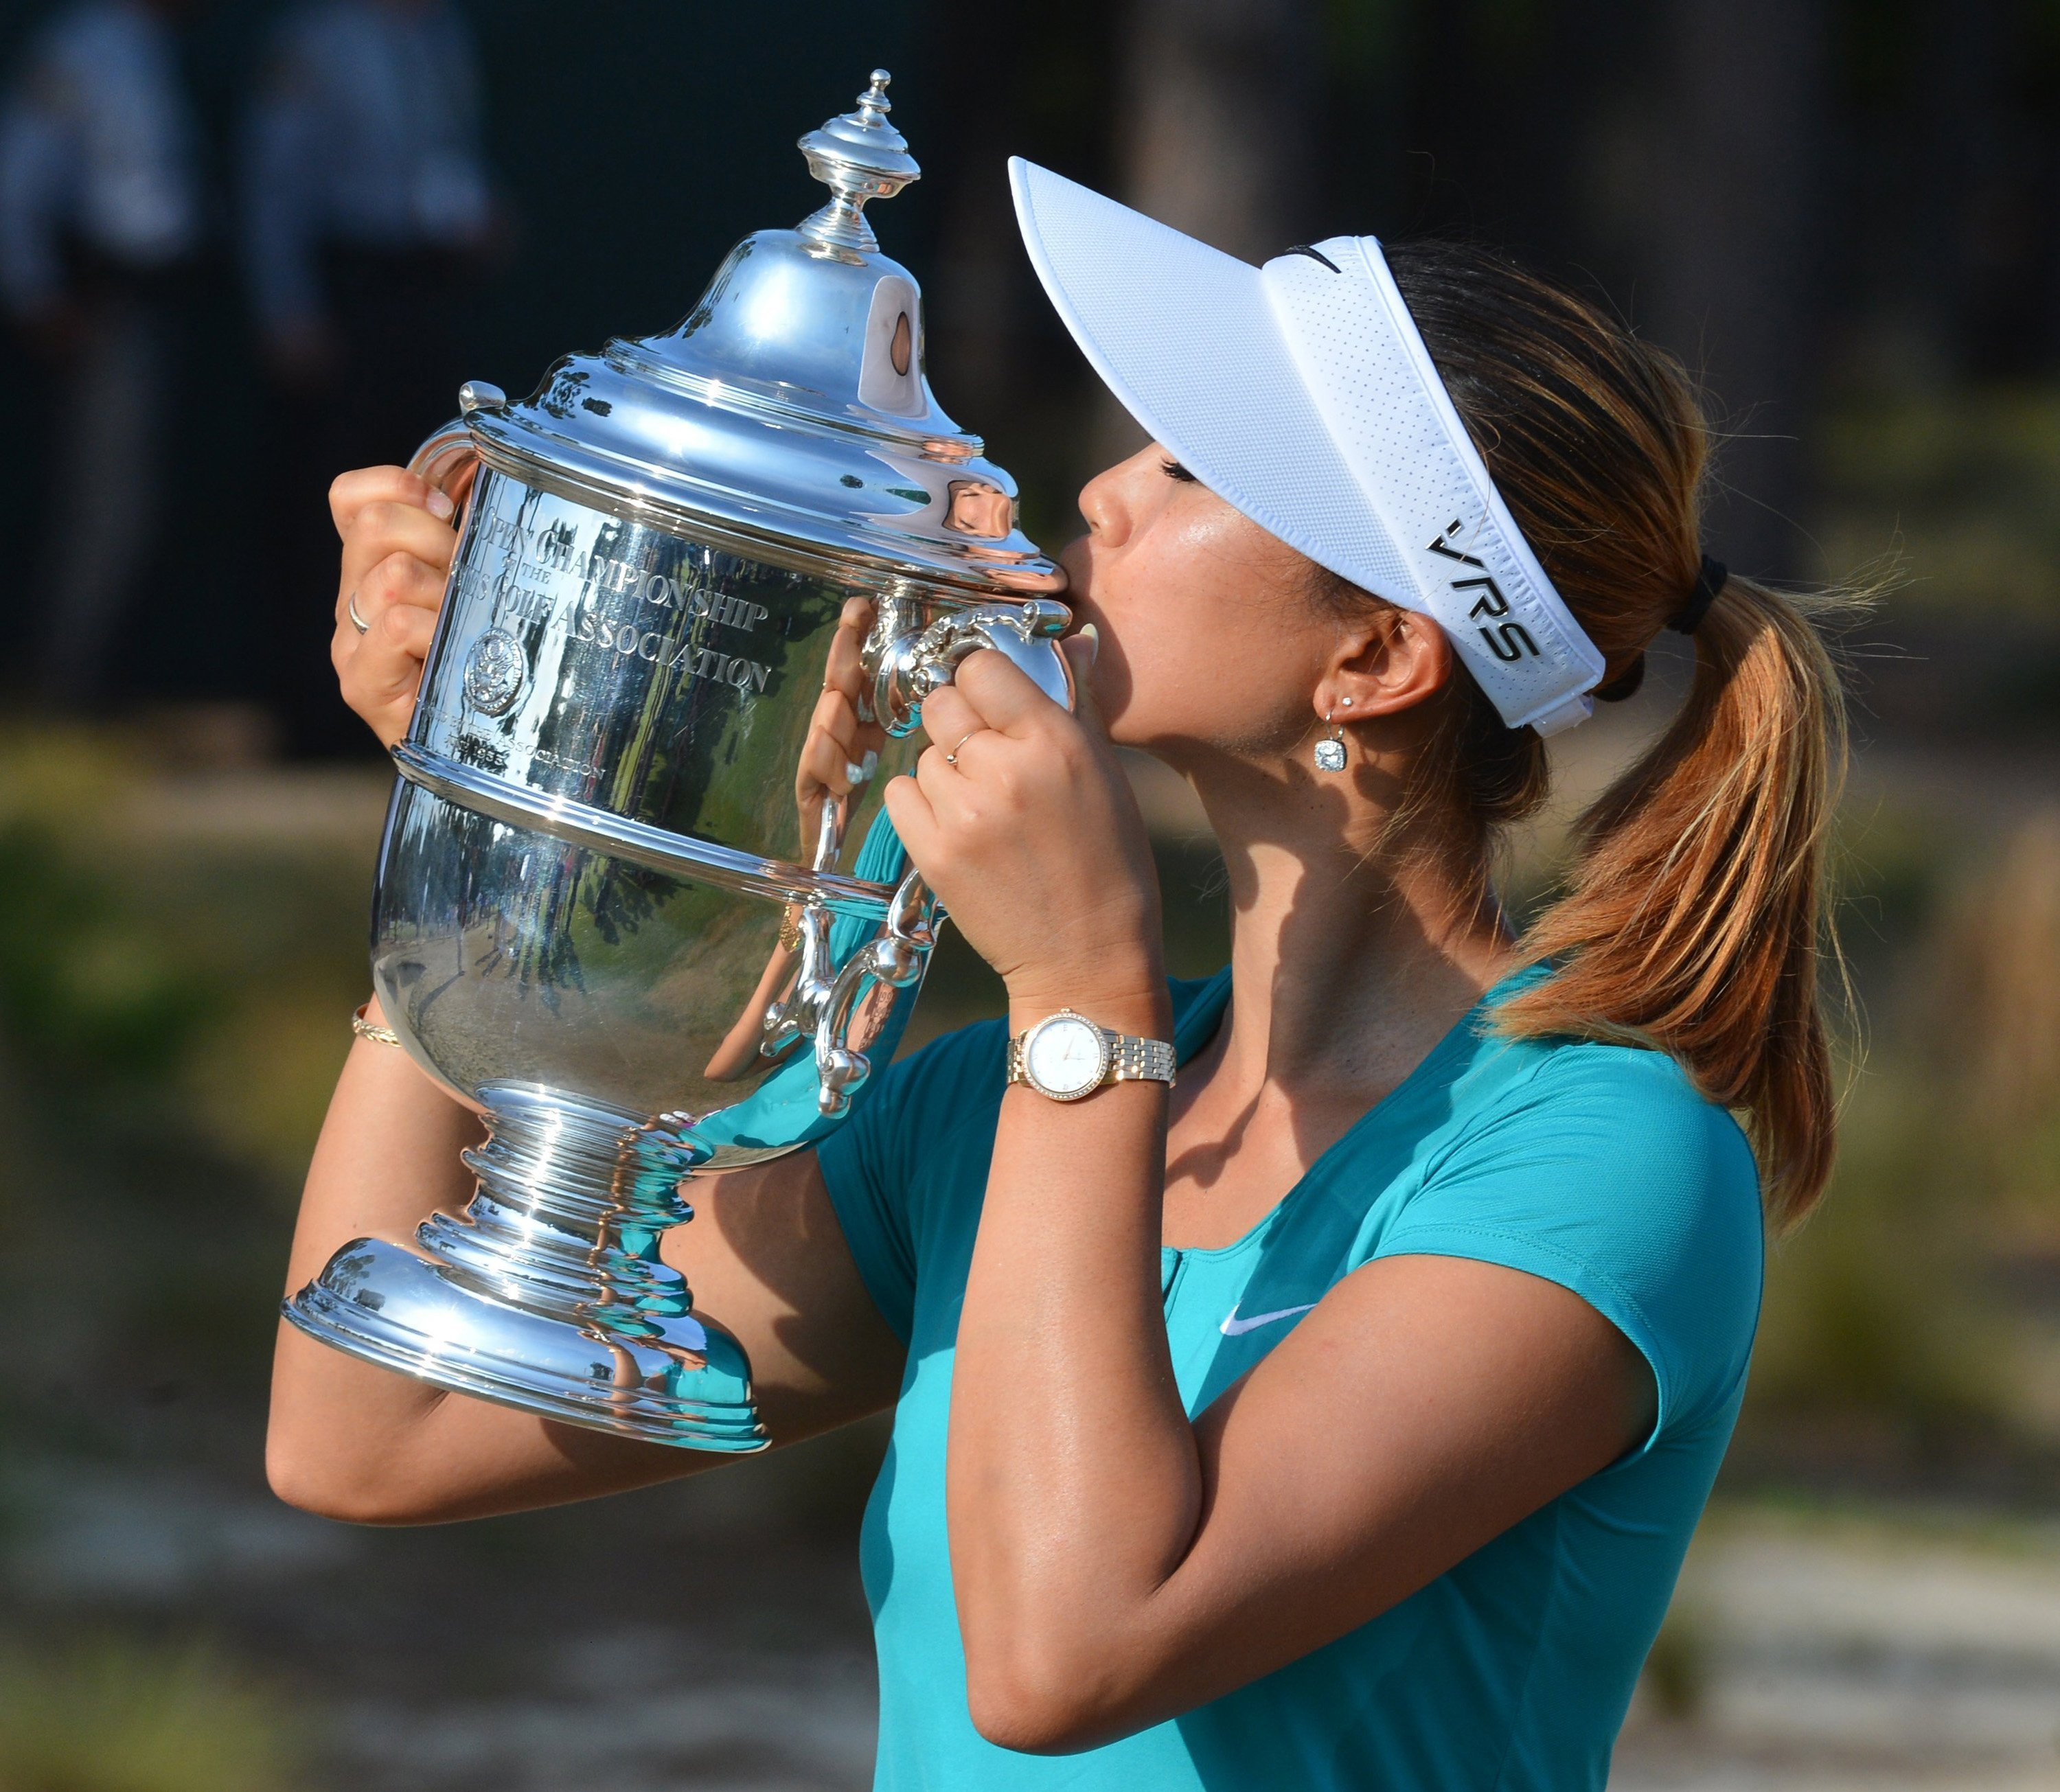 Nike athlete Michelle Wie wins the 2014 U.S. Women's Open for her first major championship.